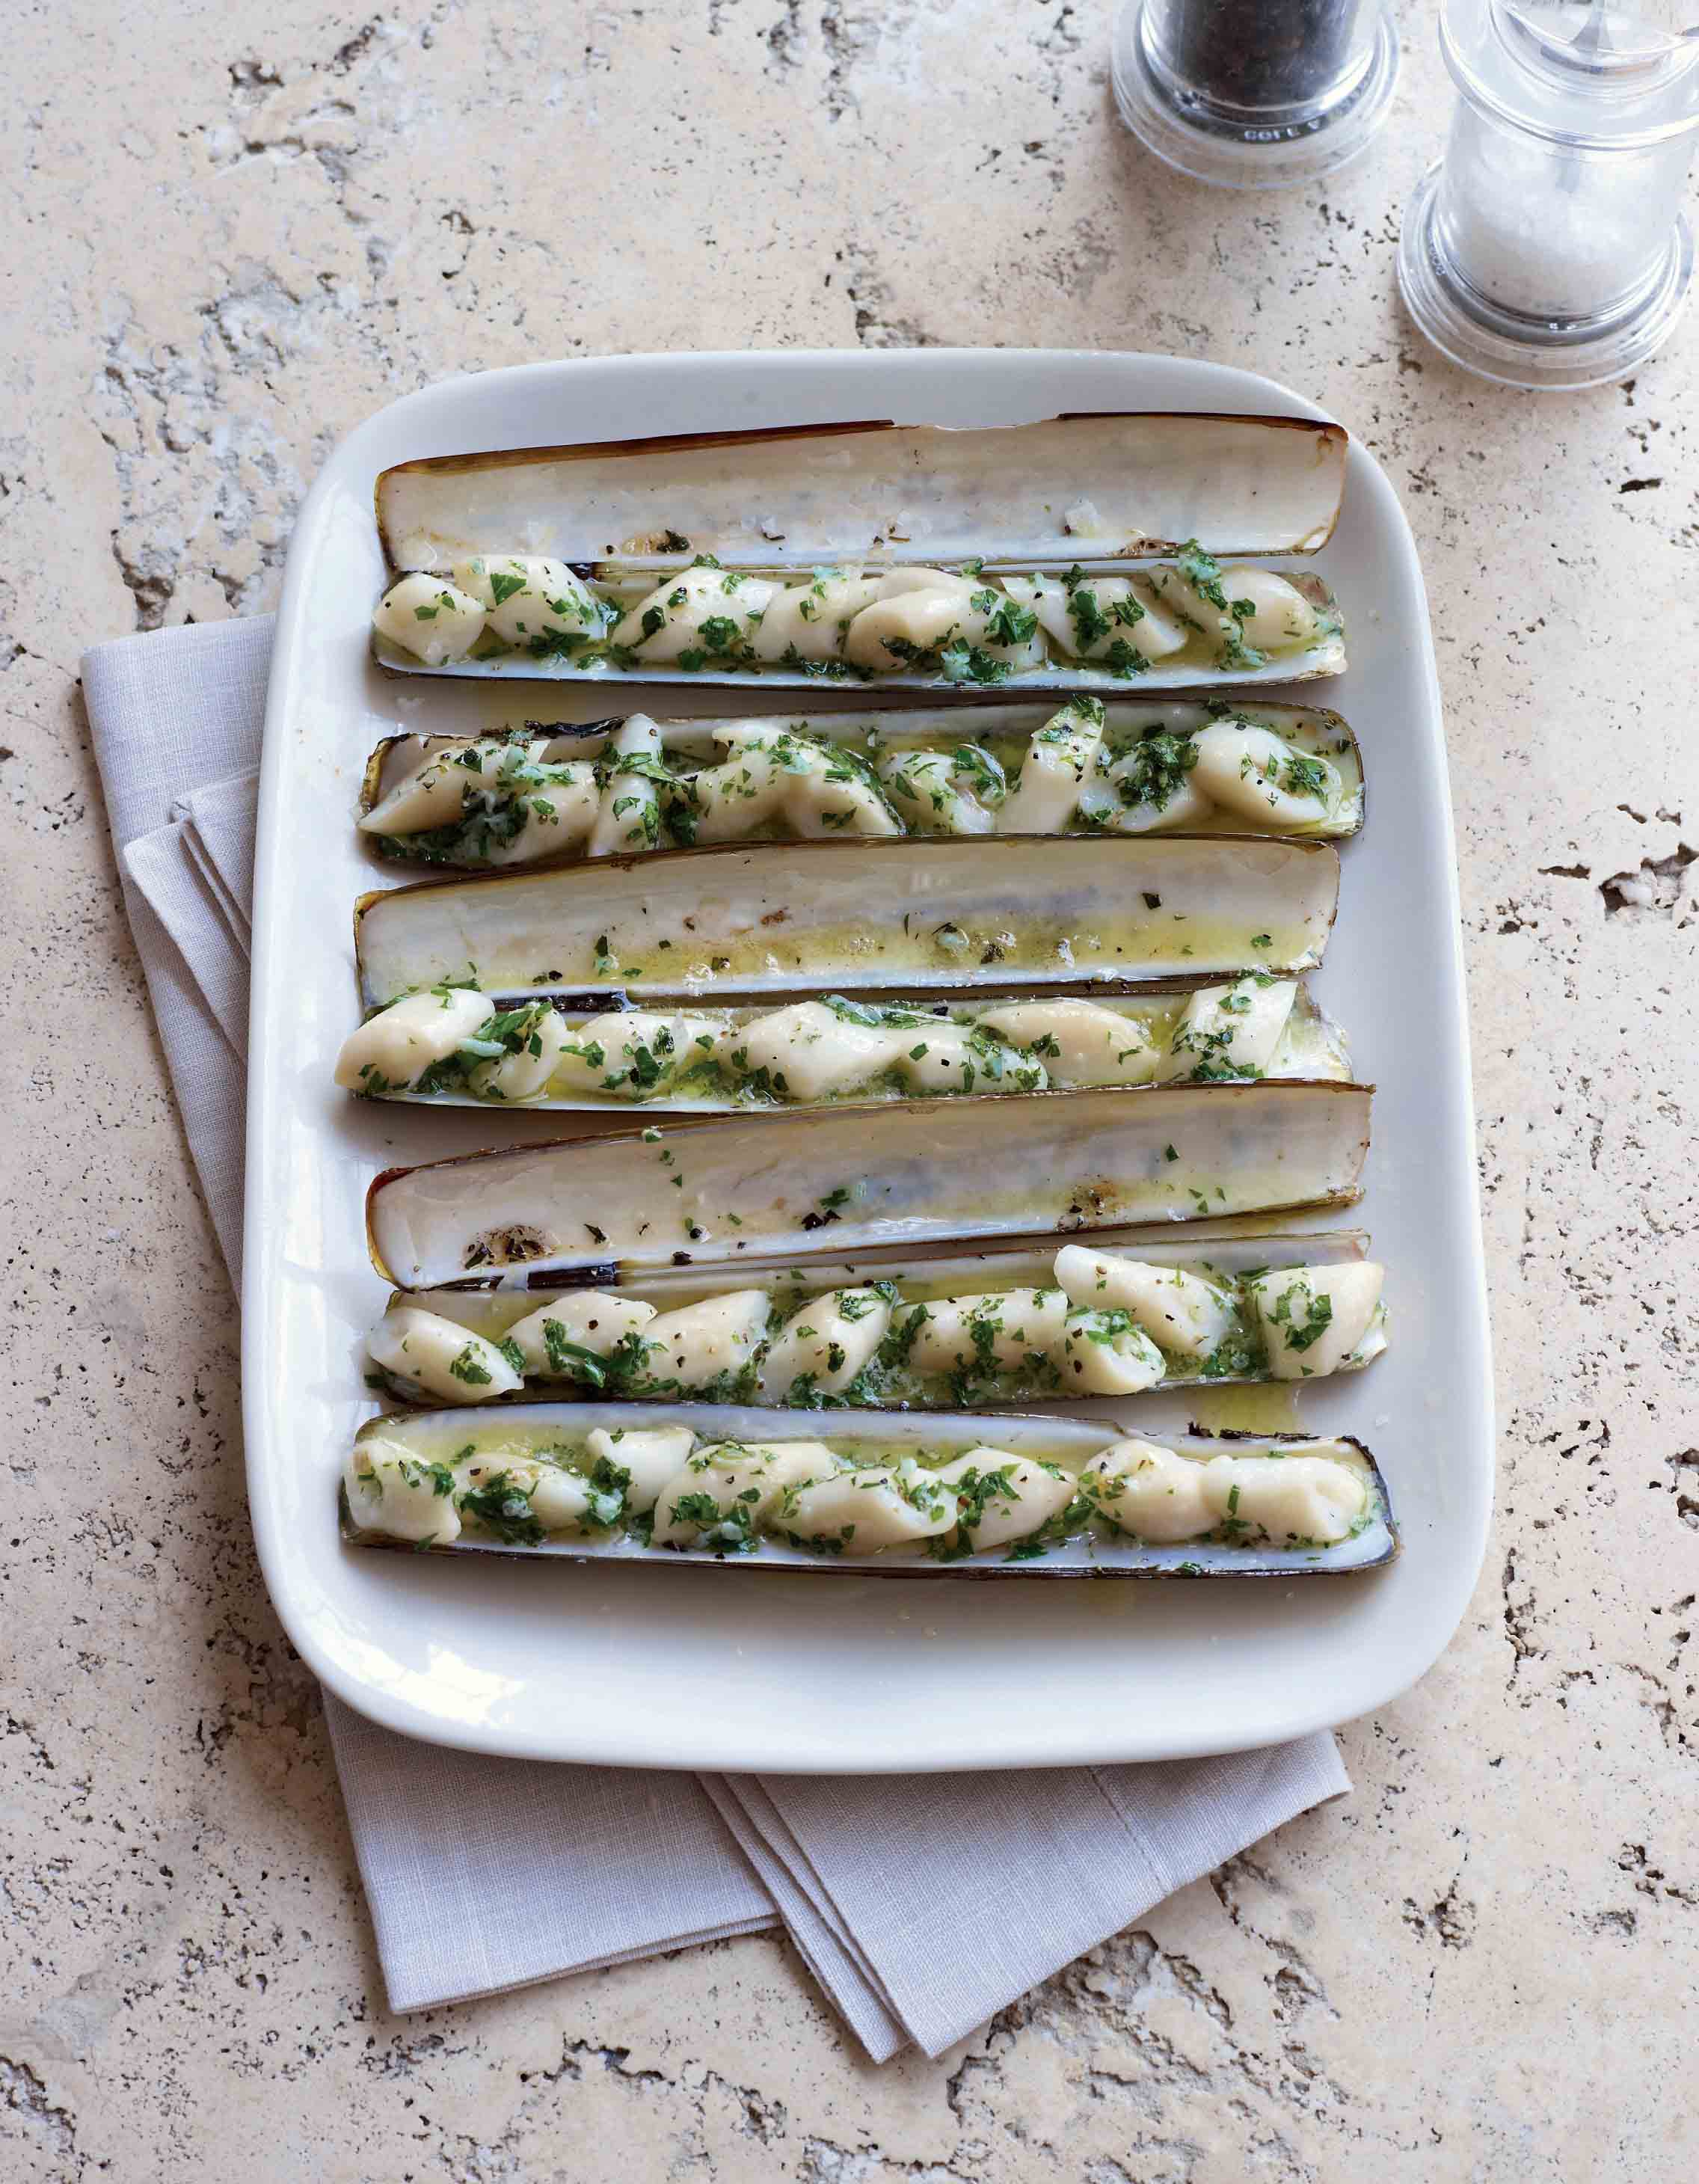 Grilled razor clams with a garlic parsley butter